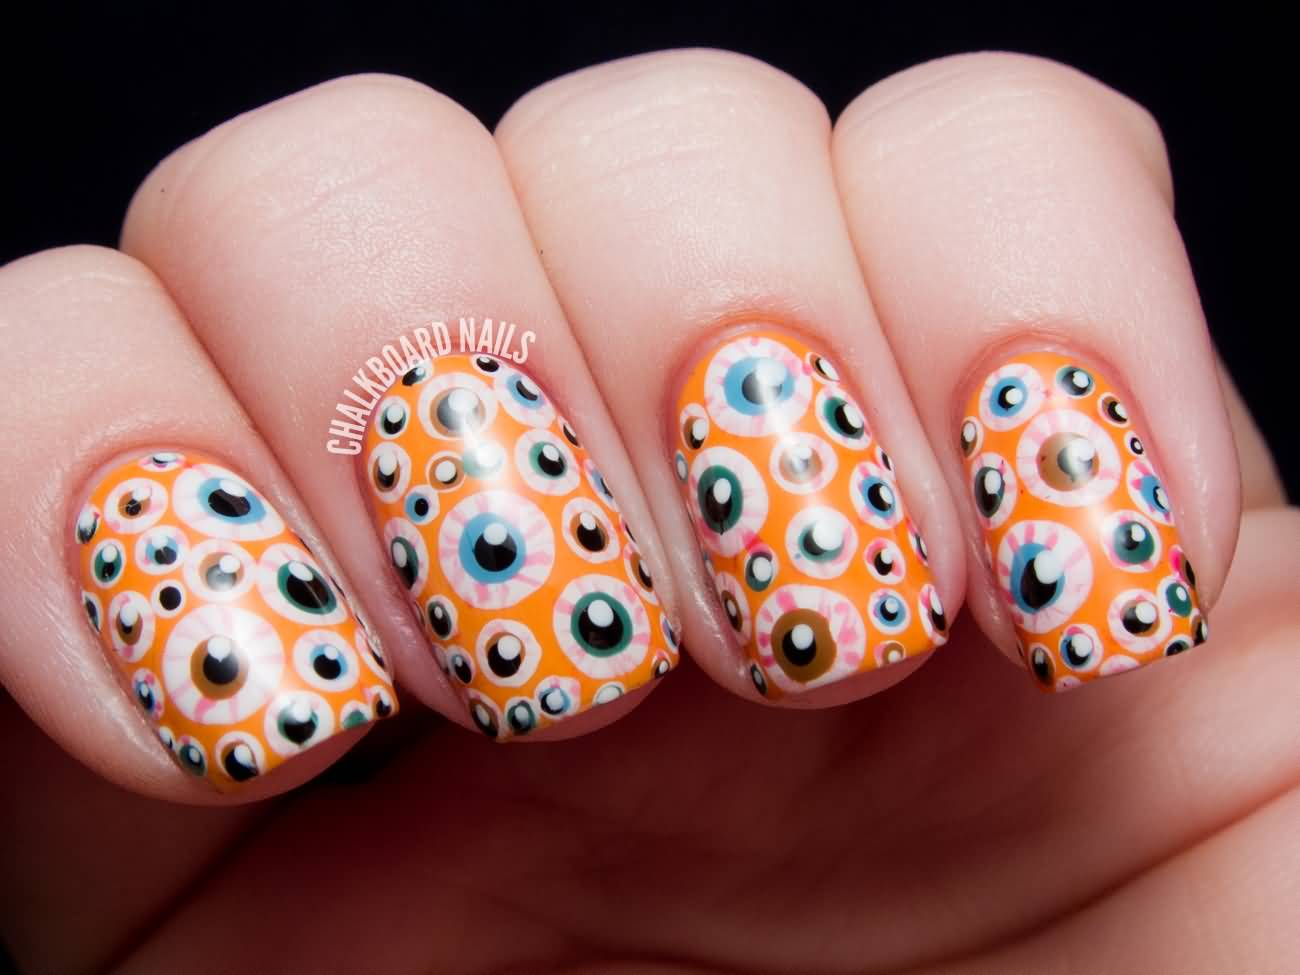 Orange Nails With Scary Eyes Halloween Nail Art